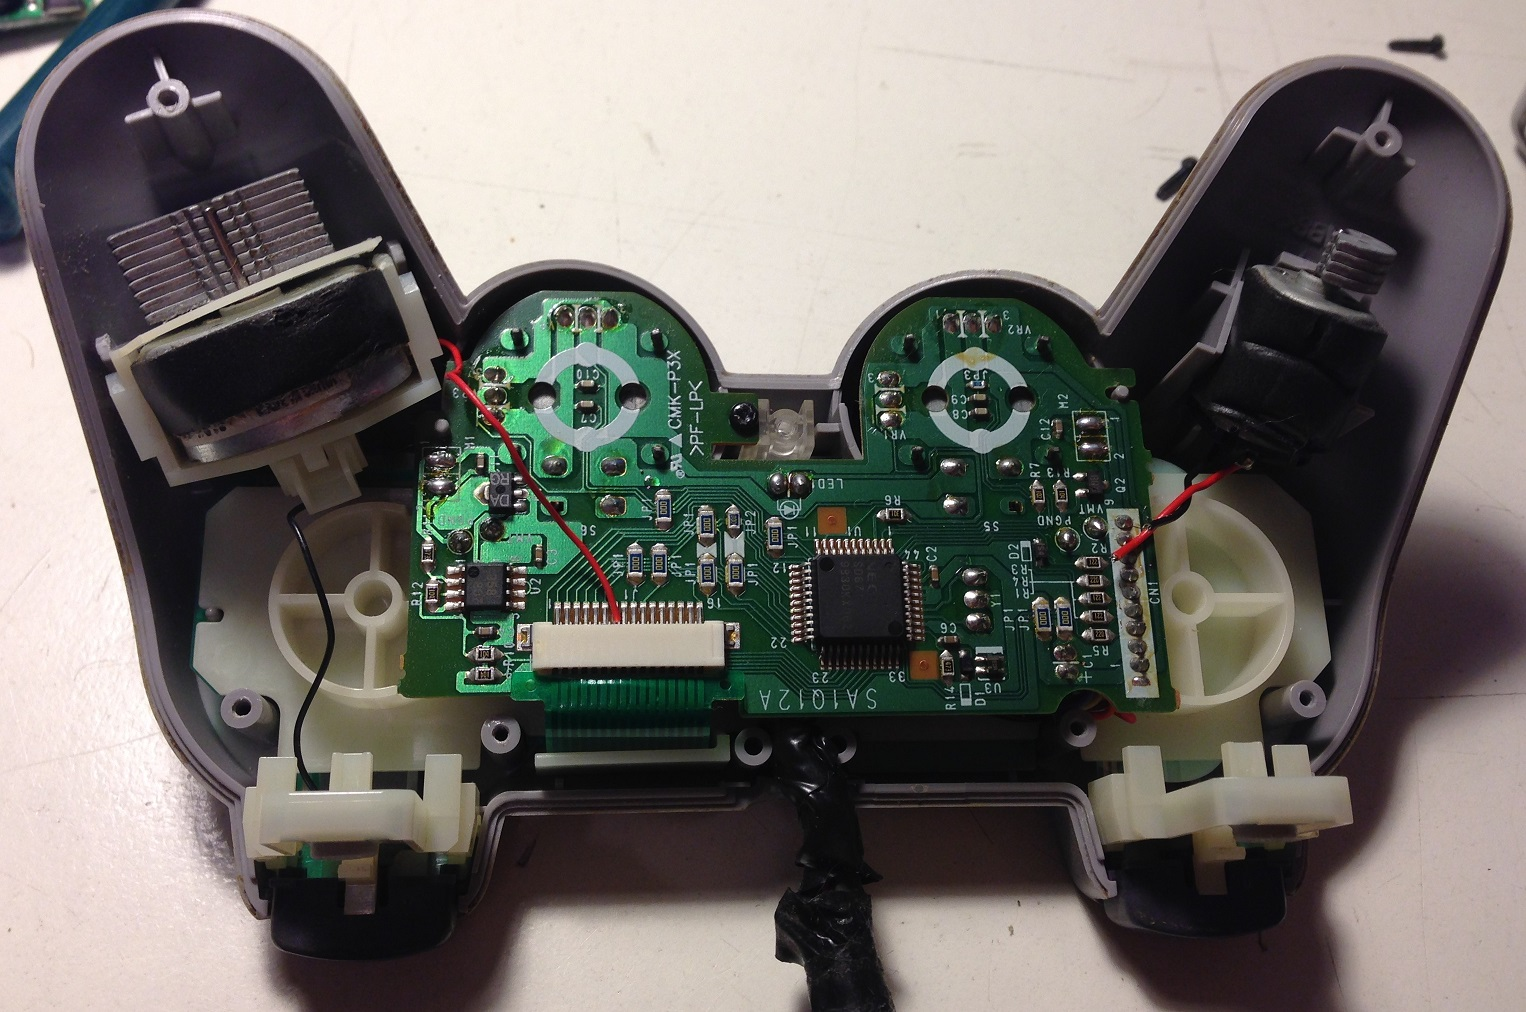 Playstation Controller Hack With Arduino Mini And Nrf24l01 2 Circuit Diagram Psx Internals Bigmotor Smallmotor